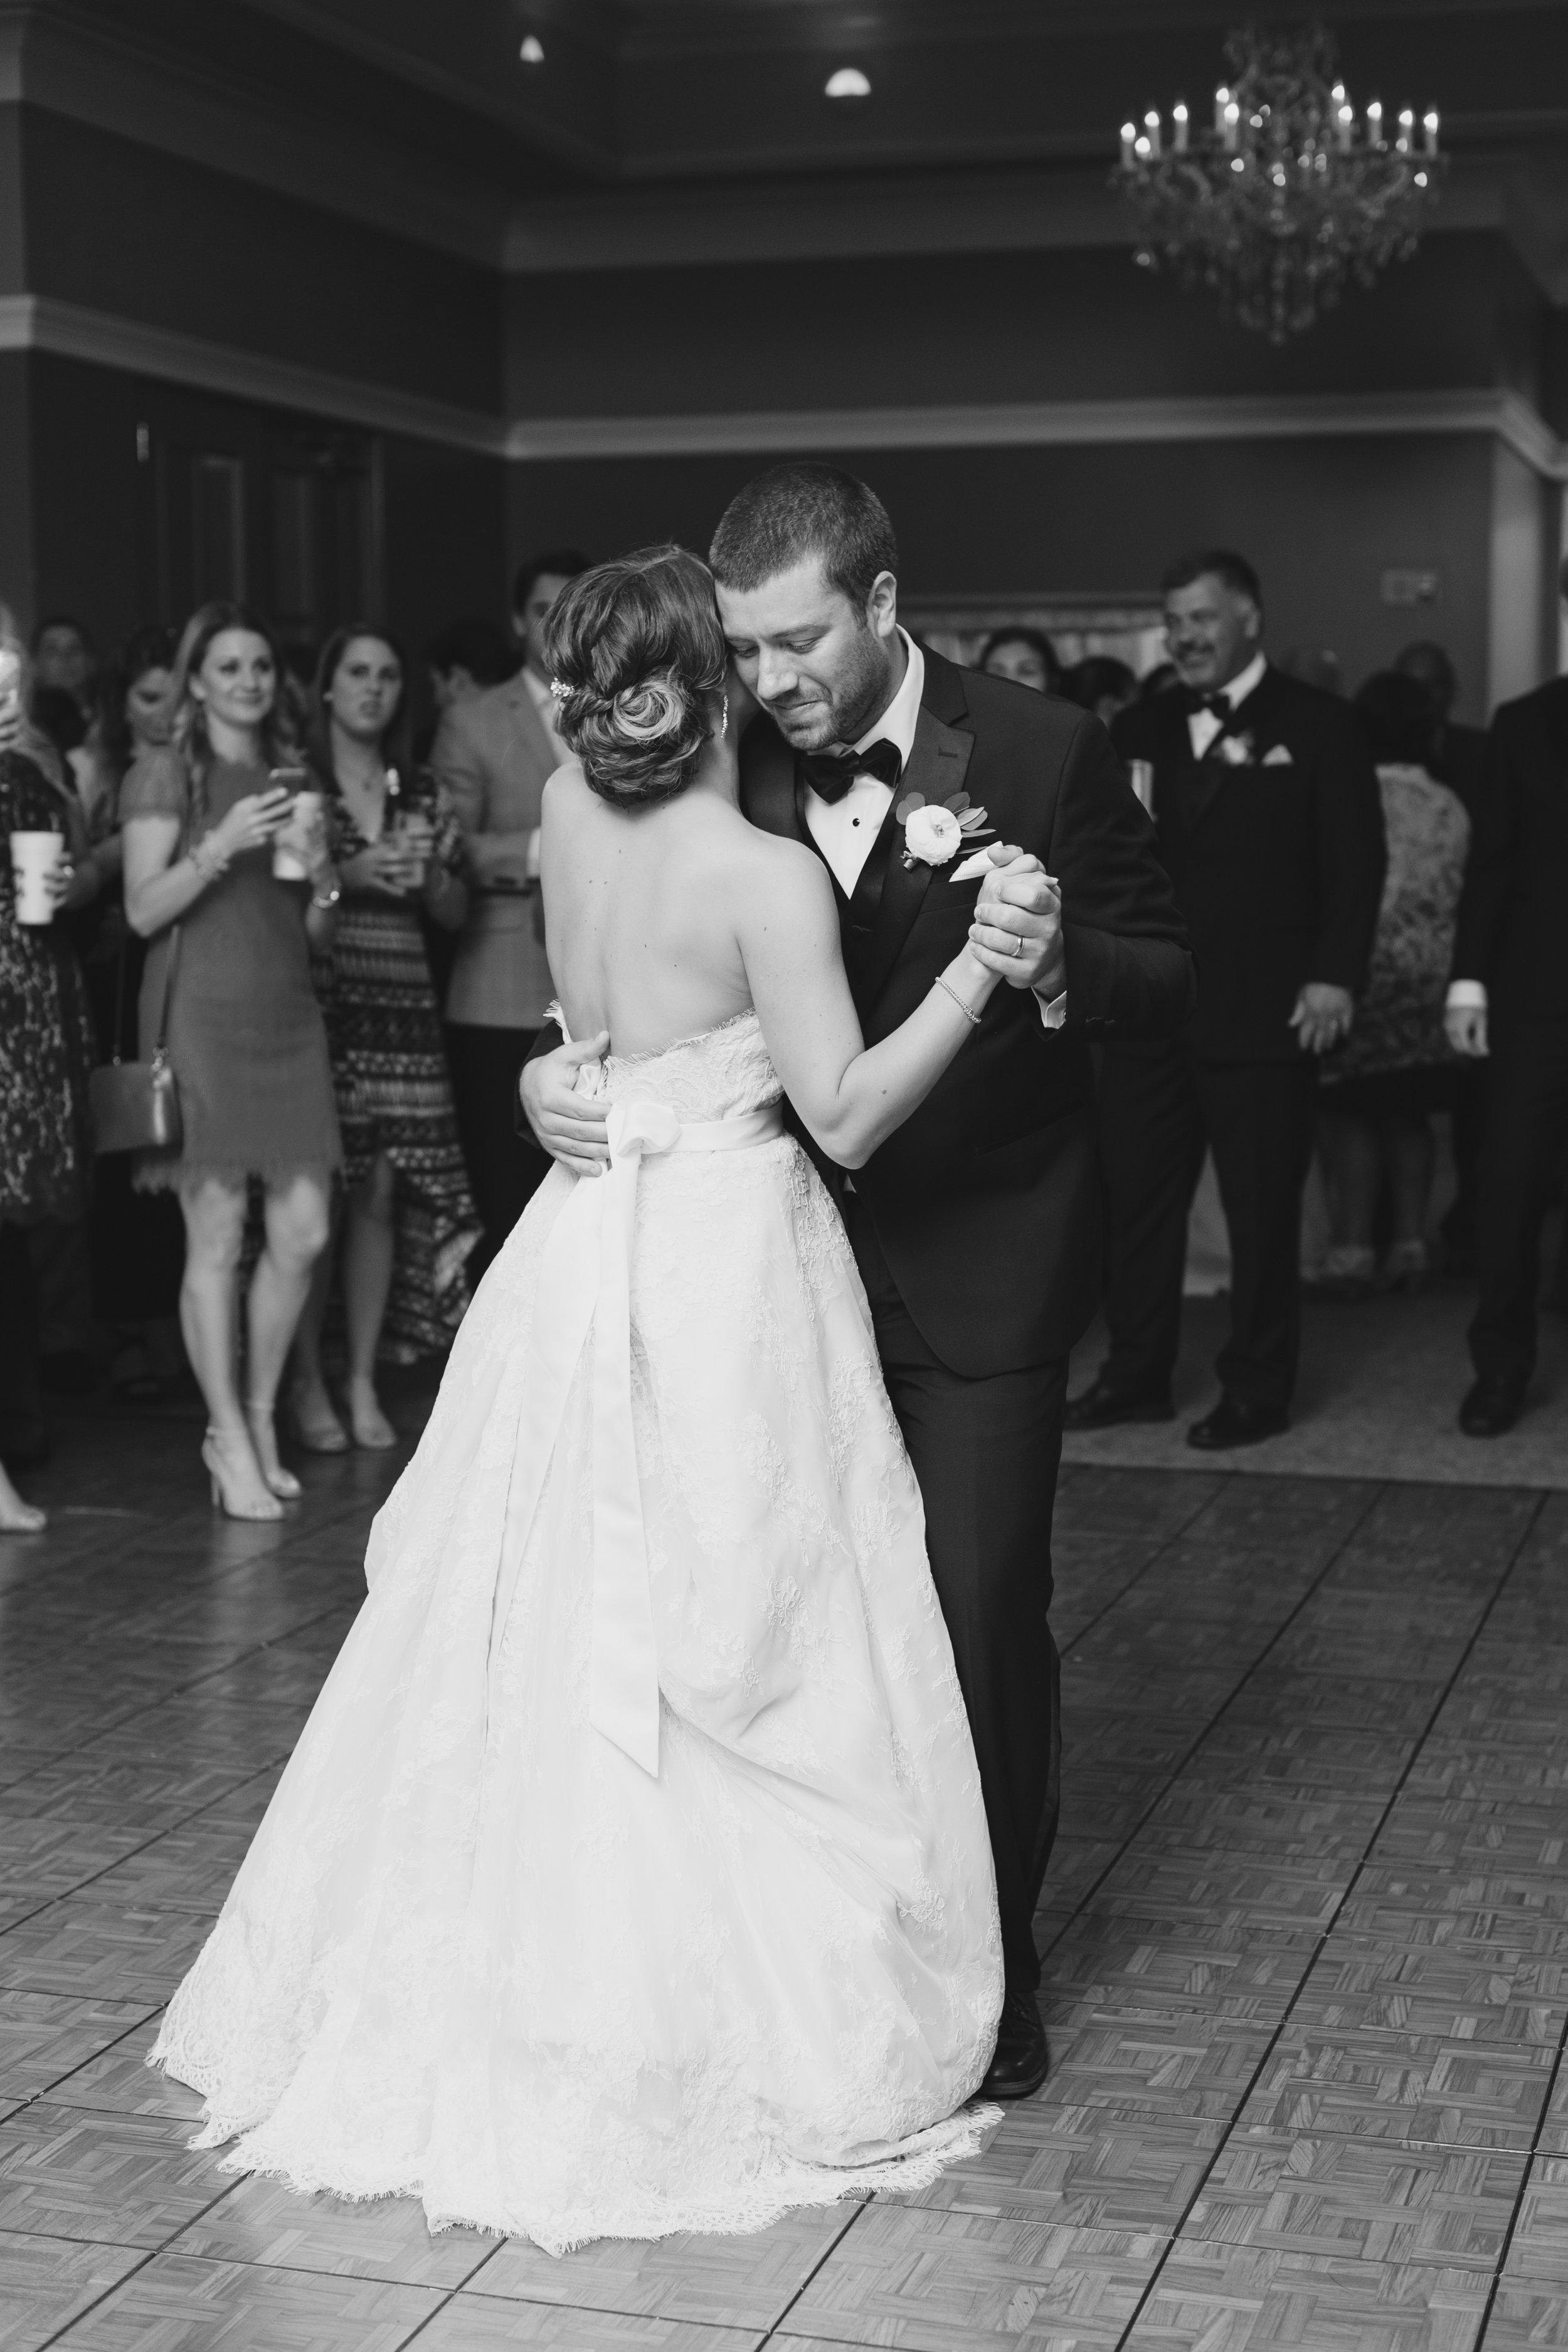 Southern Fete, Southern Wedding, Bride and Groom first dance, Kimbrali Photography, City Club, Apercu